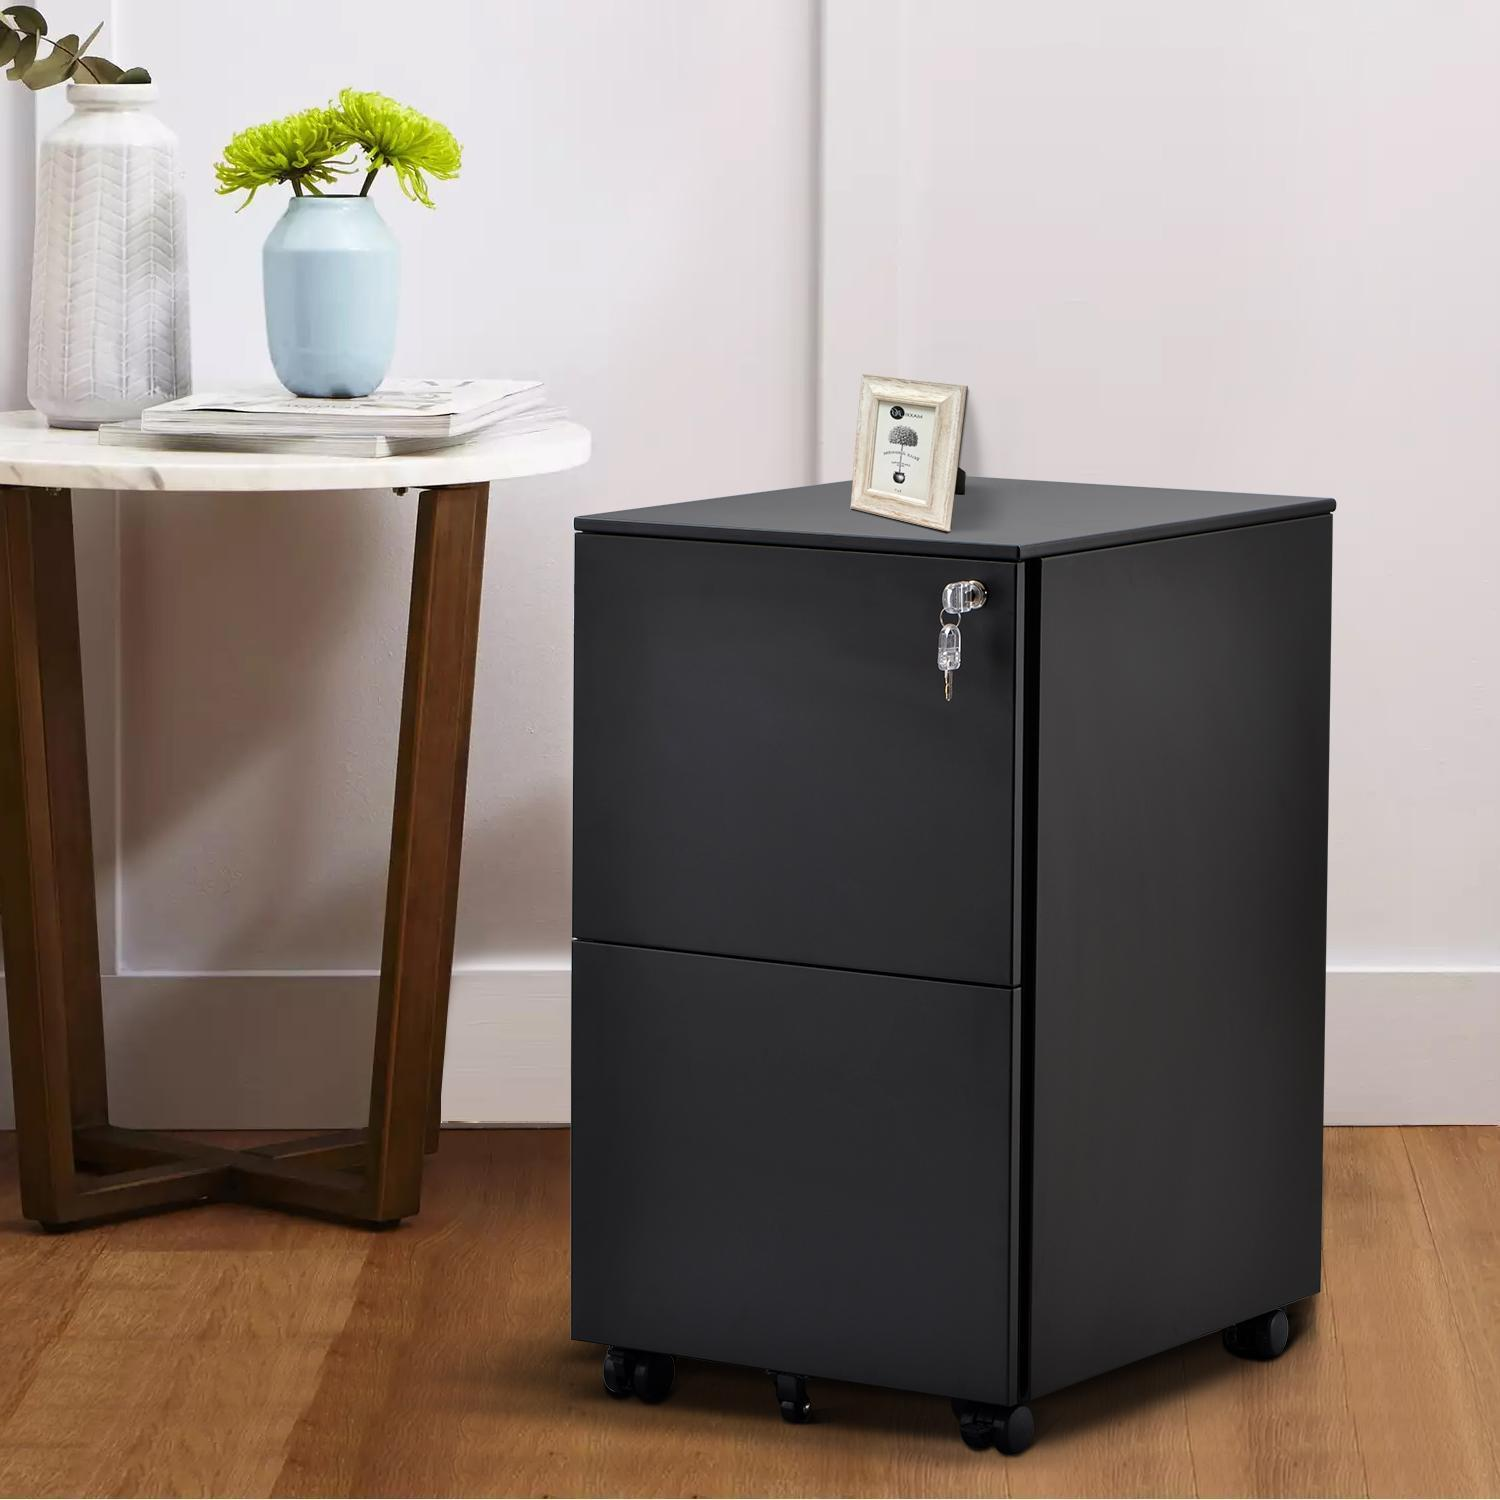 355 Mobile File Cabinet With Lock Metal Filing Cabinet Legal Letter A355  Size Fully Assembled Except Wheels 355 Drawer White Black From Zikun355,  $35565.35